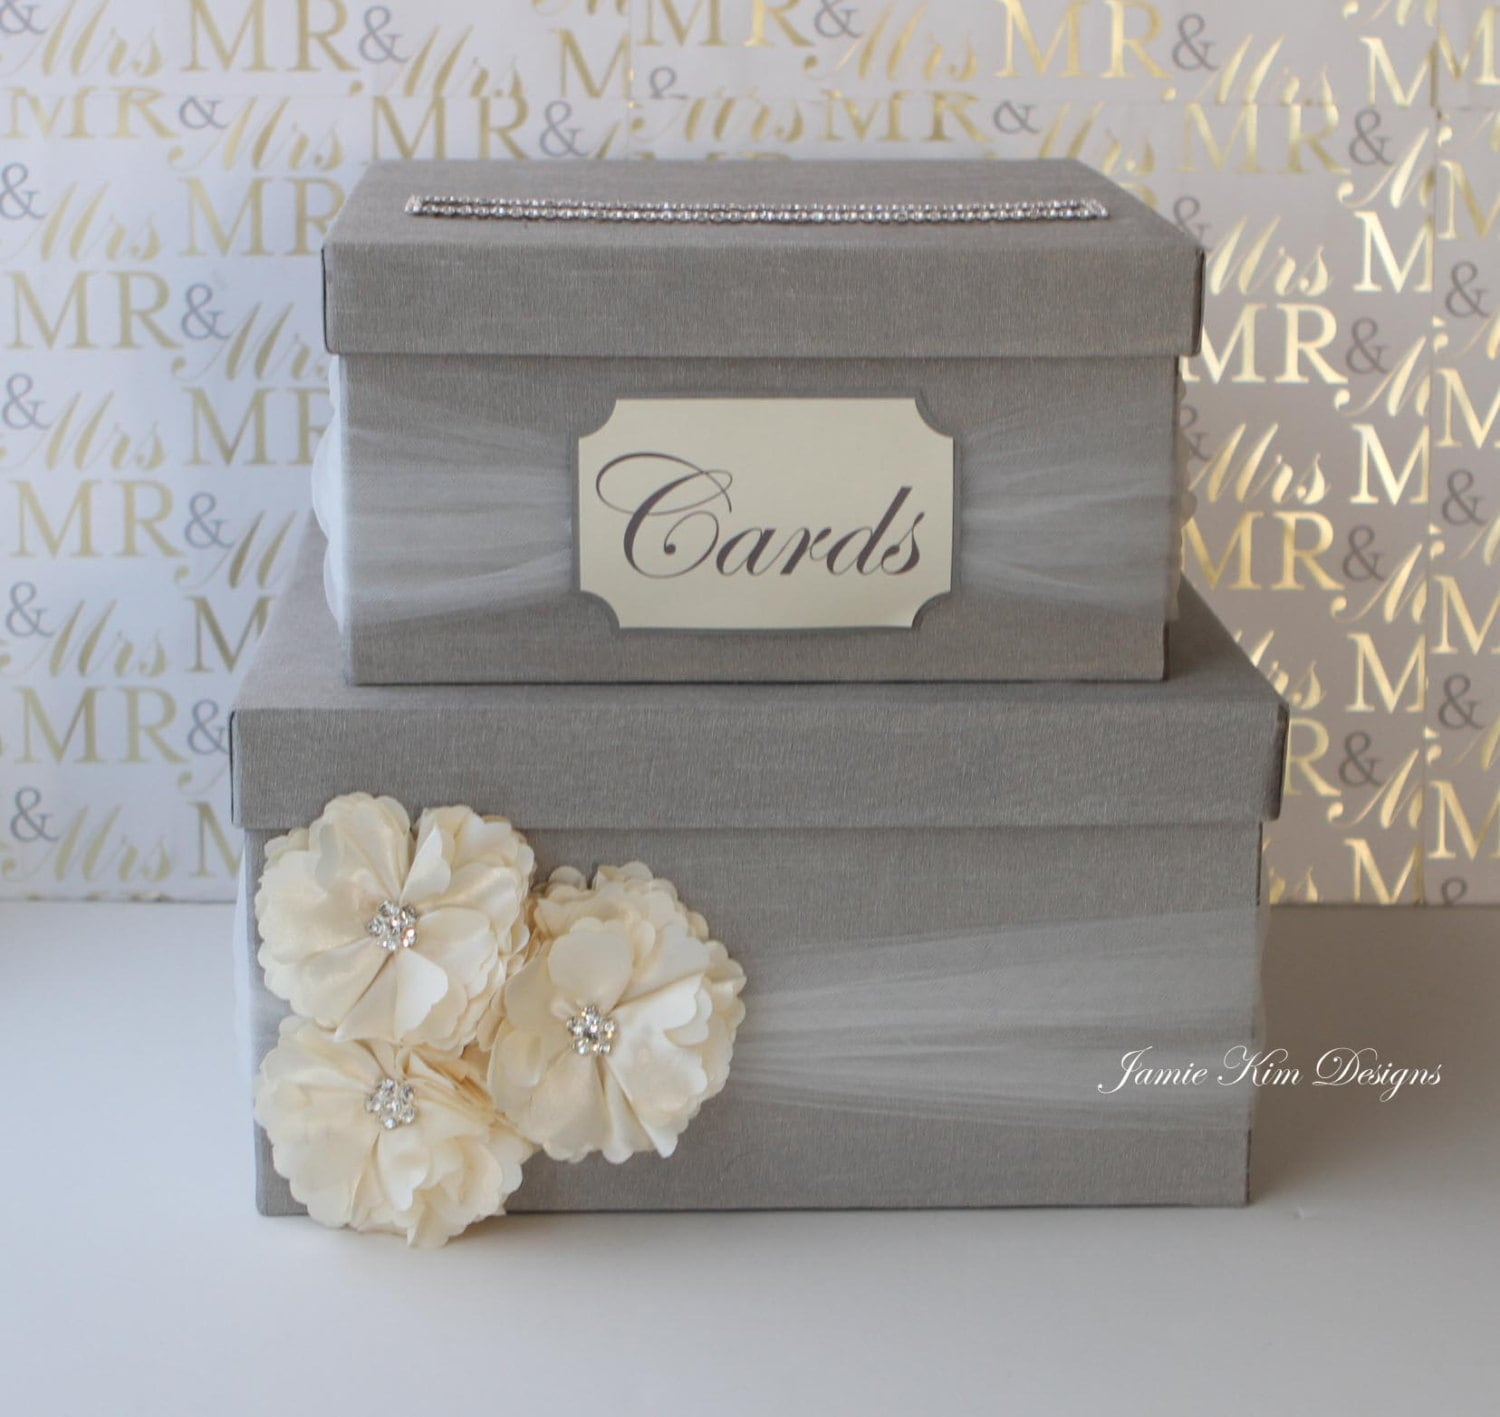 Unique Wedding Card Holder Ideas: Wedding Card Box Money Box Custom Card Box Custom Made To